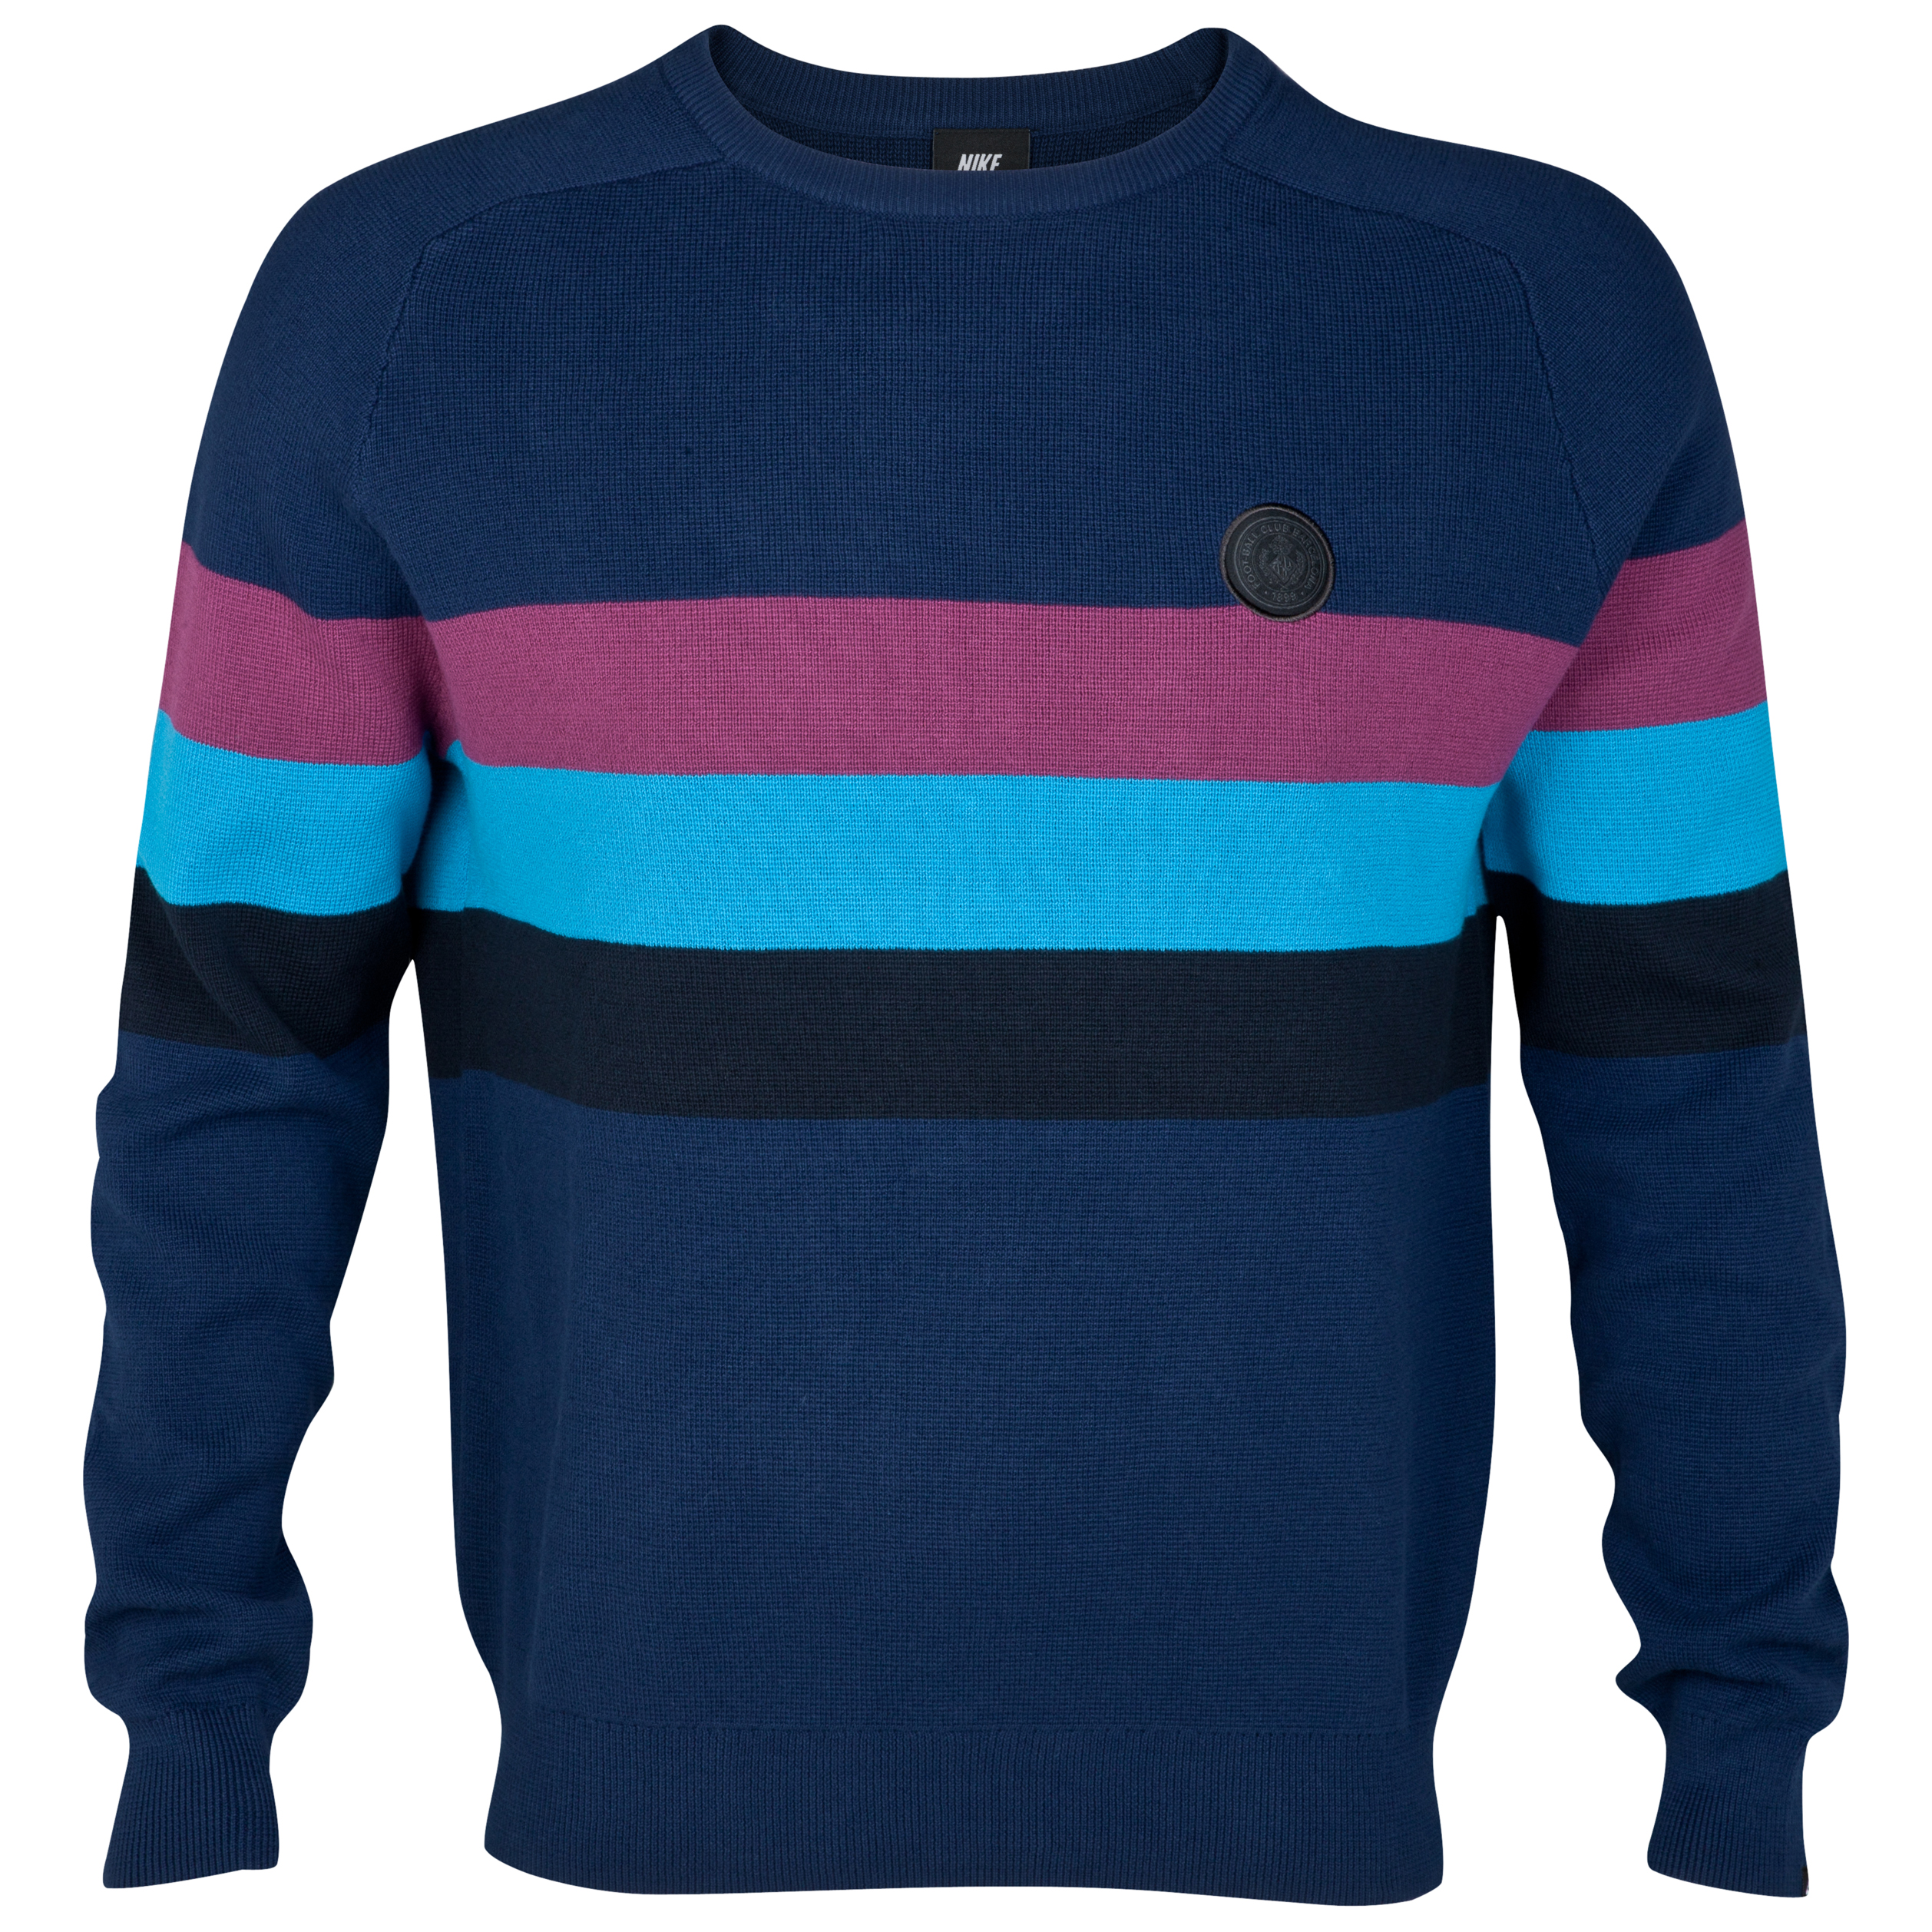 Barcelona NSW Knitted Crew Neck Sweater - Midnight Navy